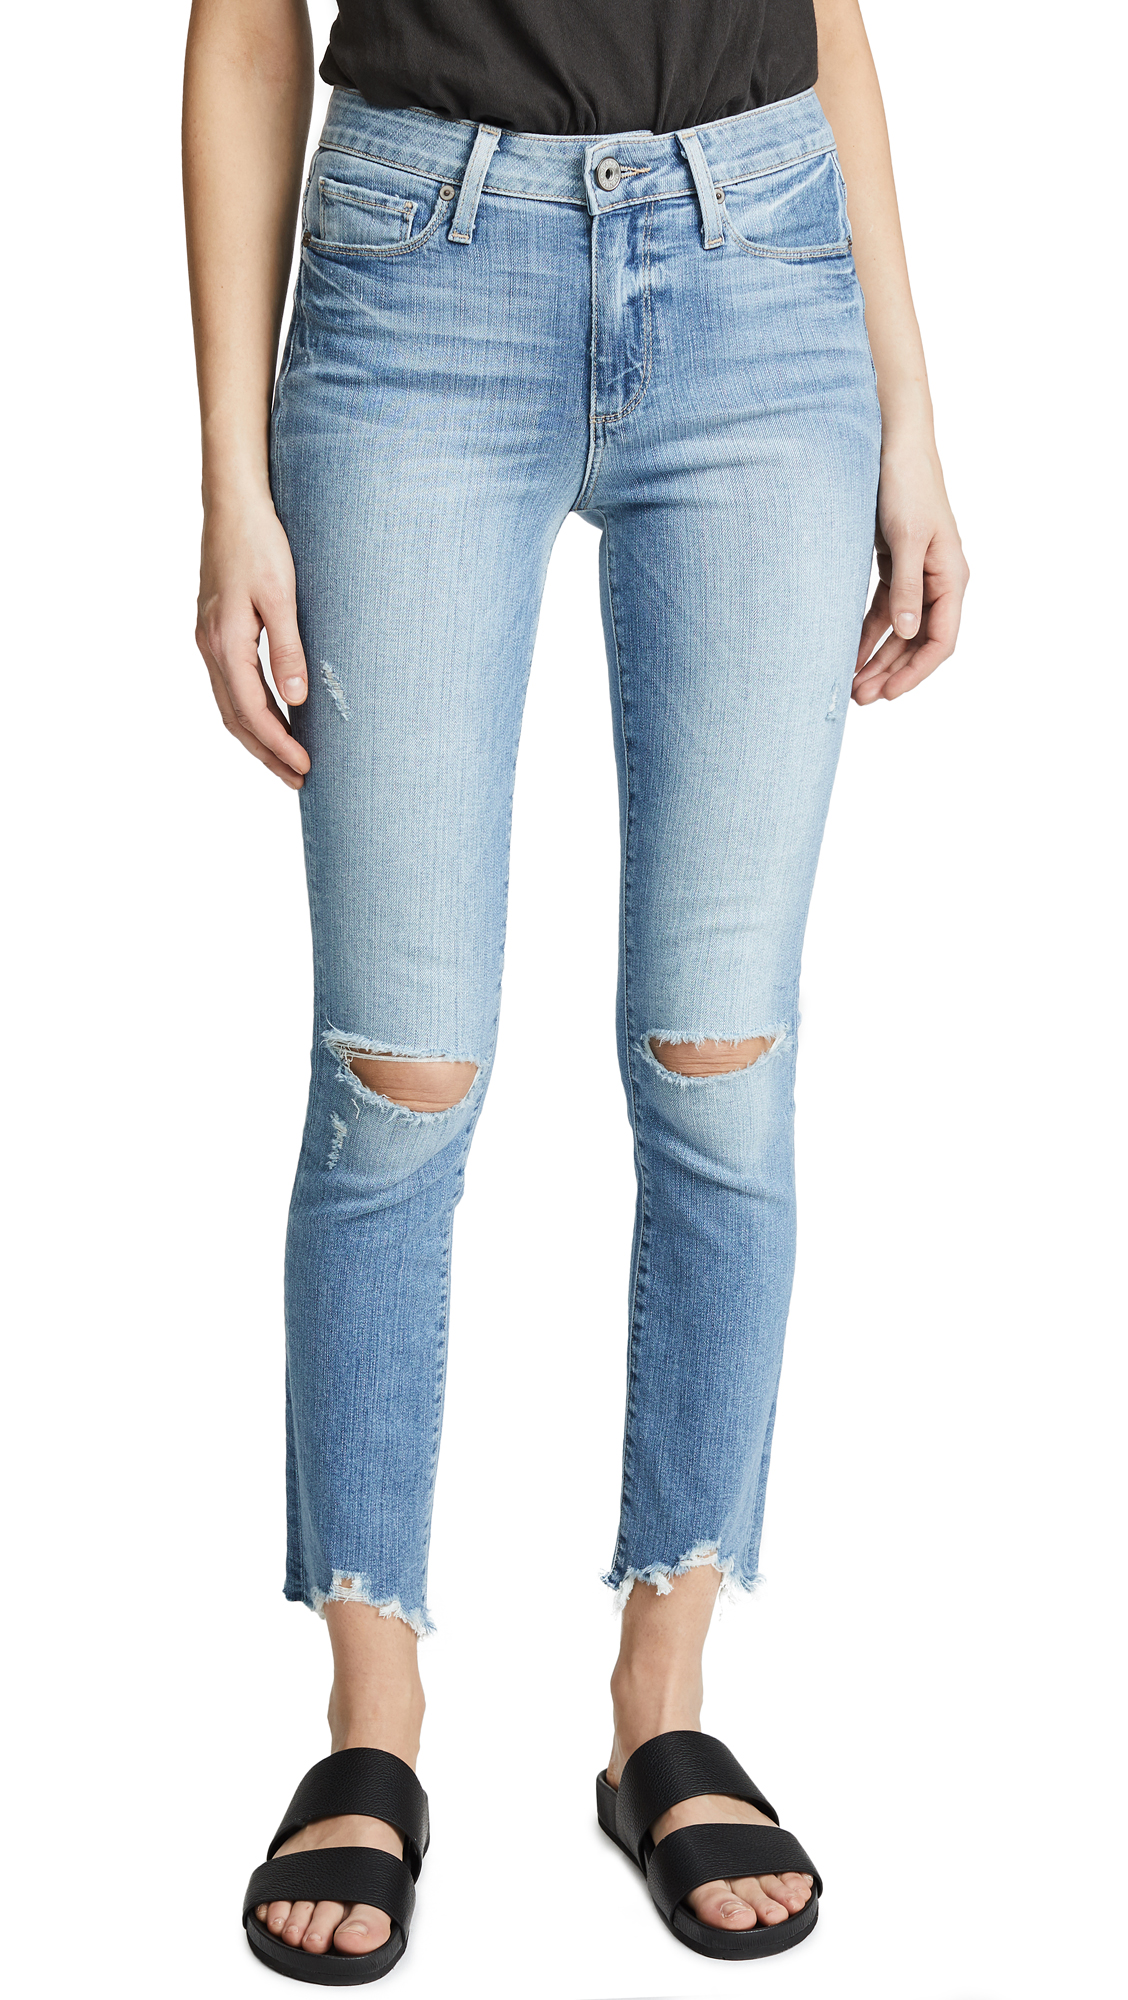 PAIGE Hoxton Ankle Peg Skinny Jeans In Janis Destructed